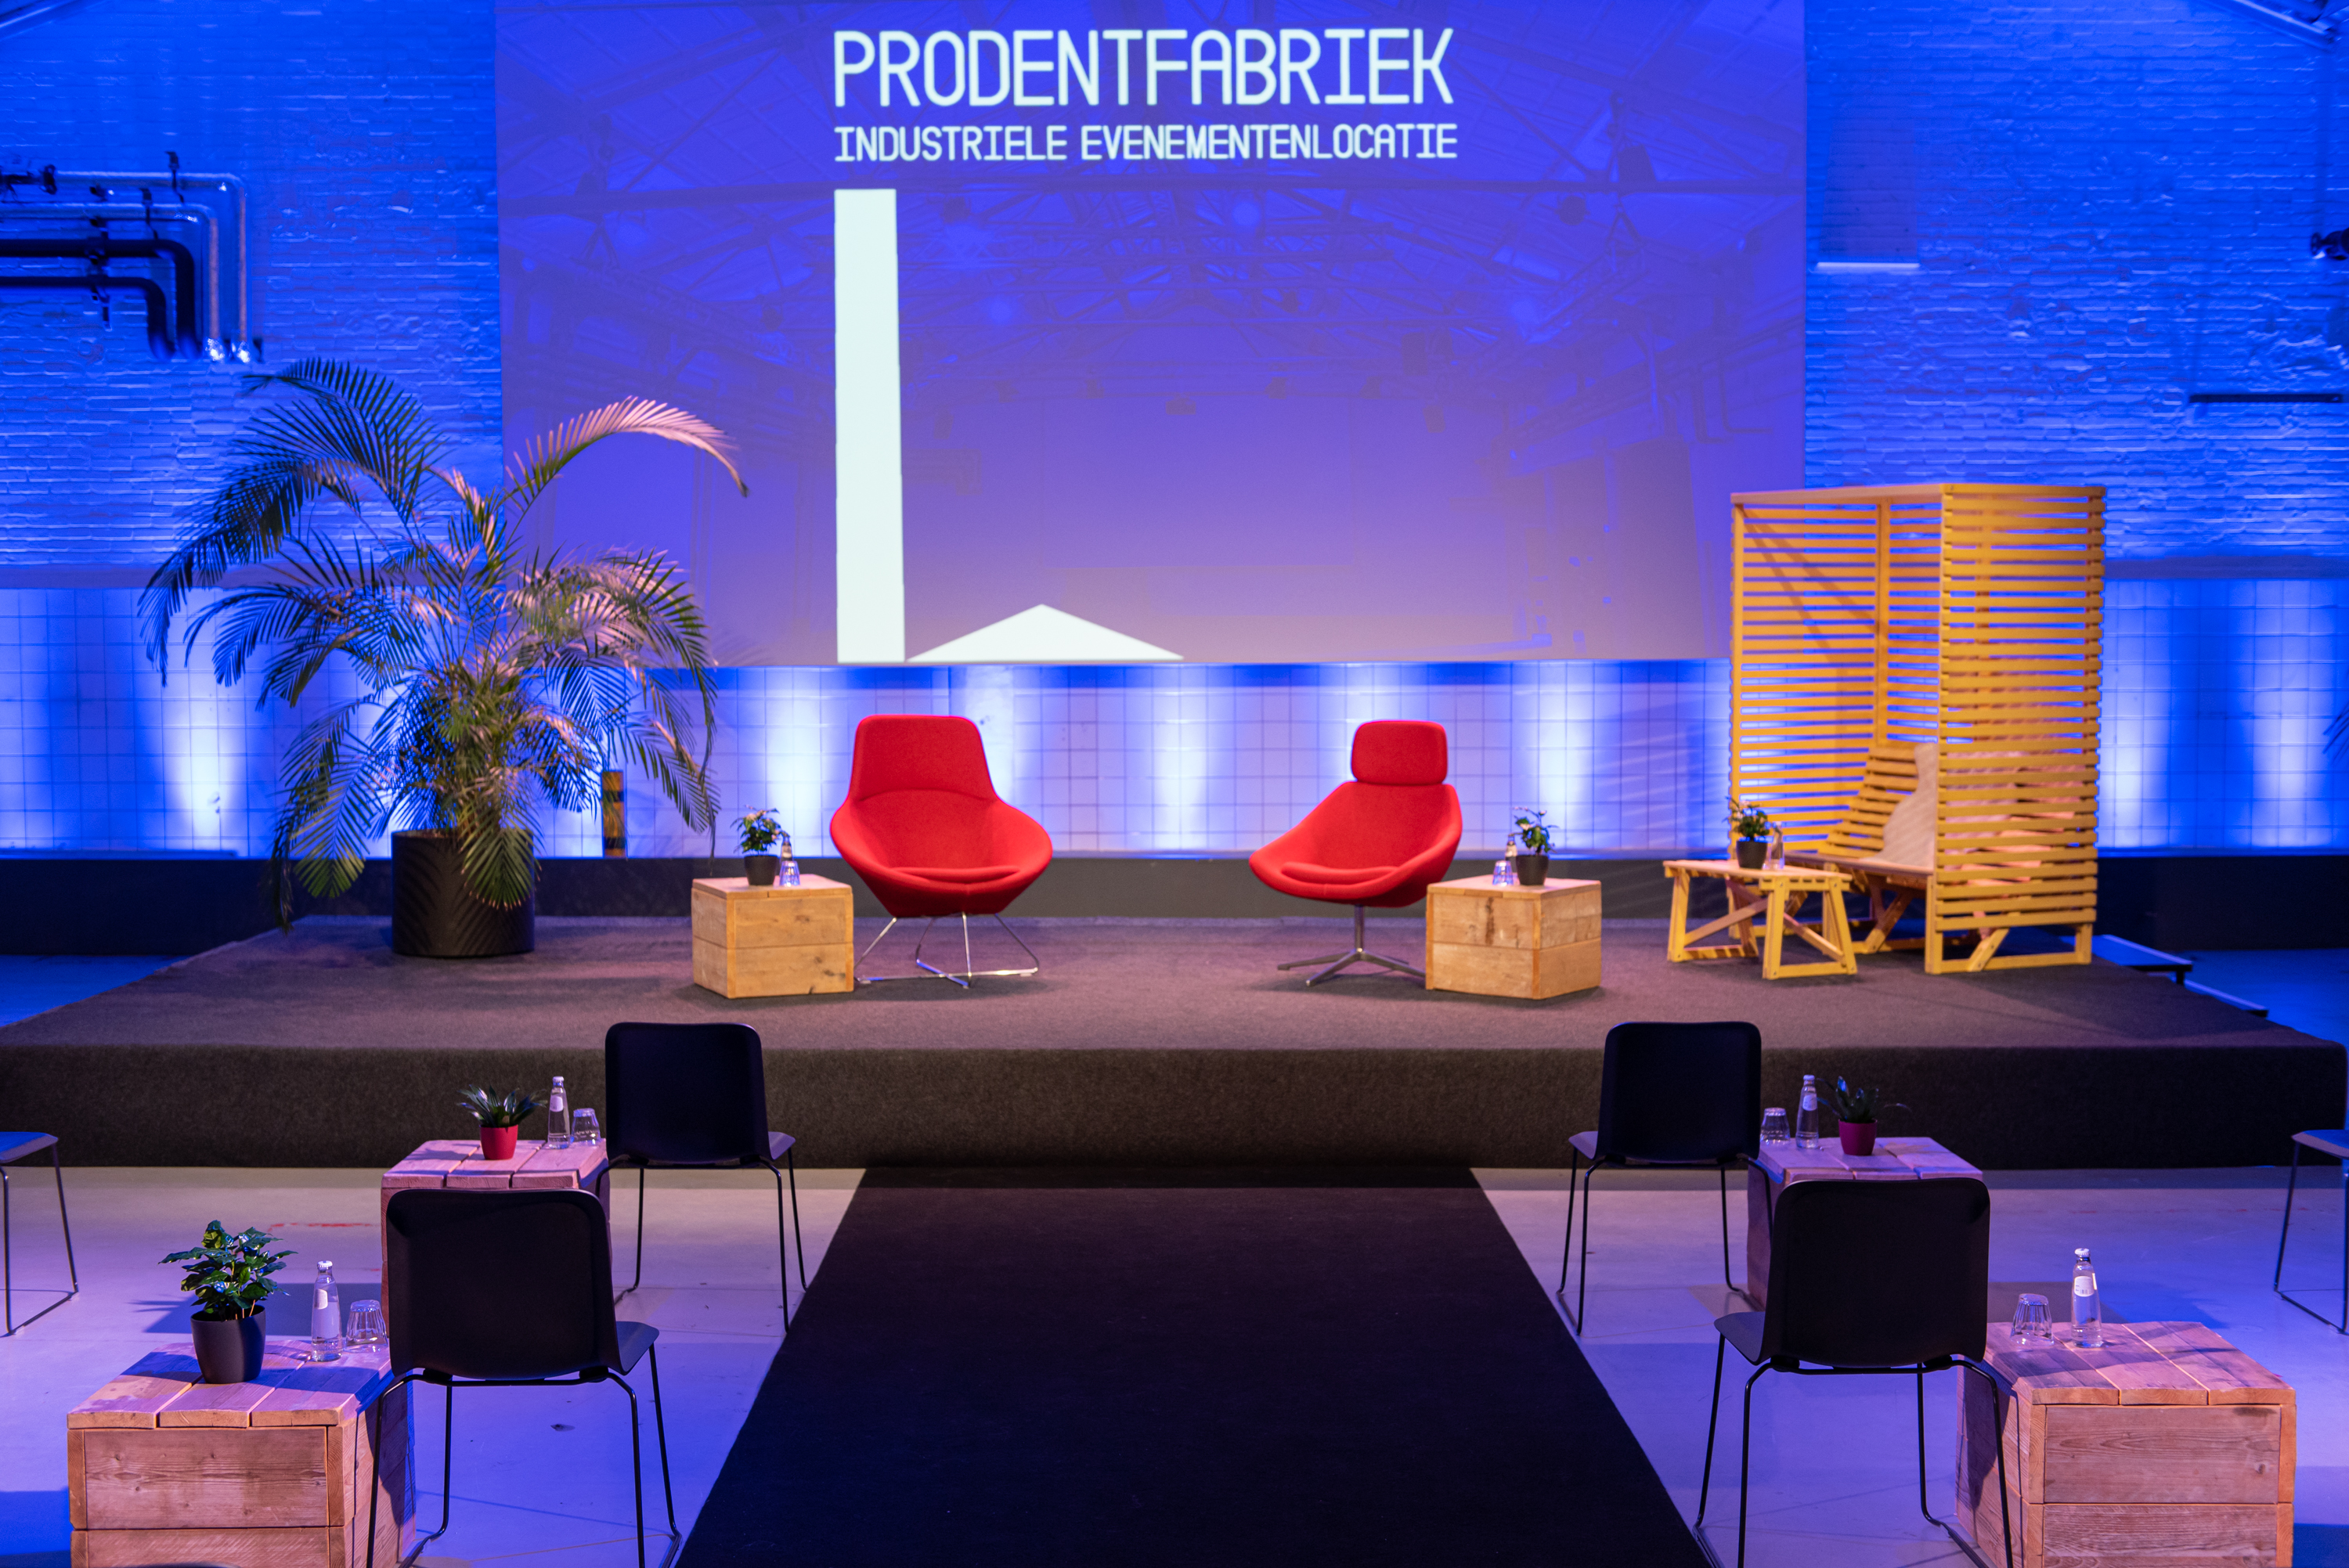 De Prodentfabriek: Industrieel Studio en Evenementencomplex